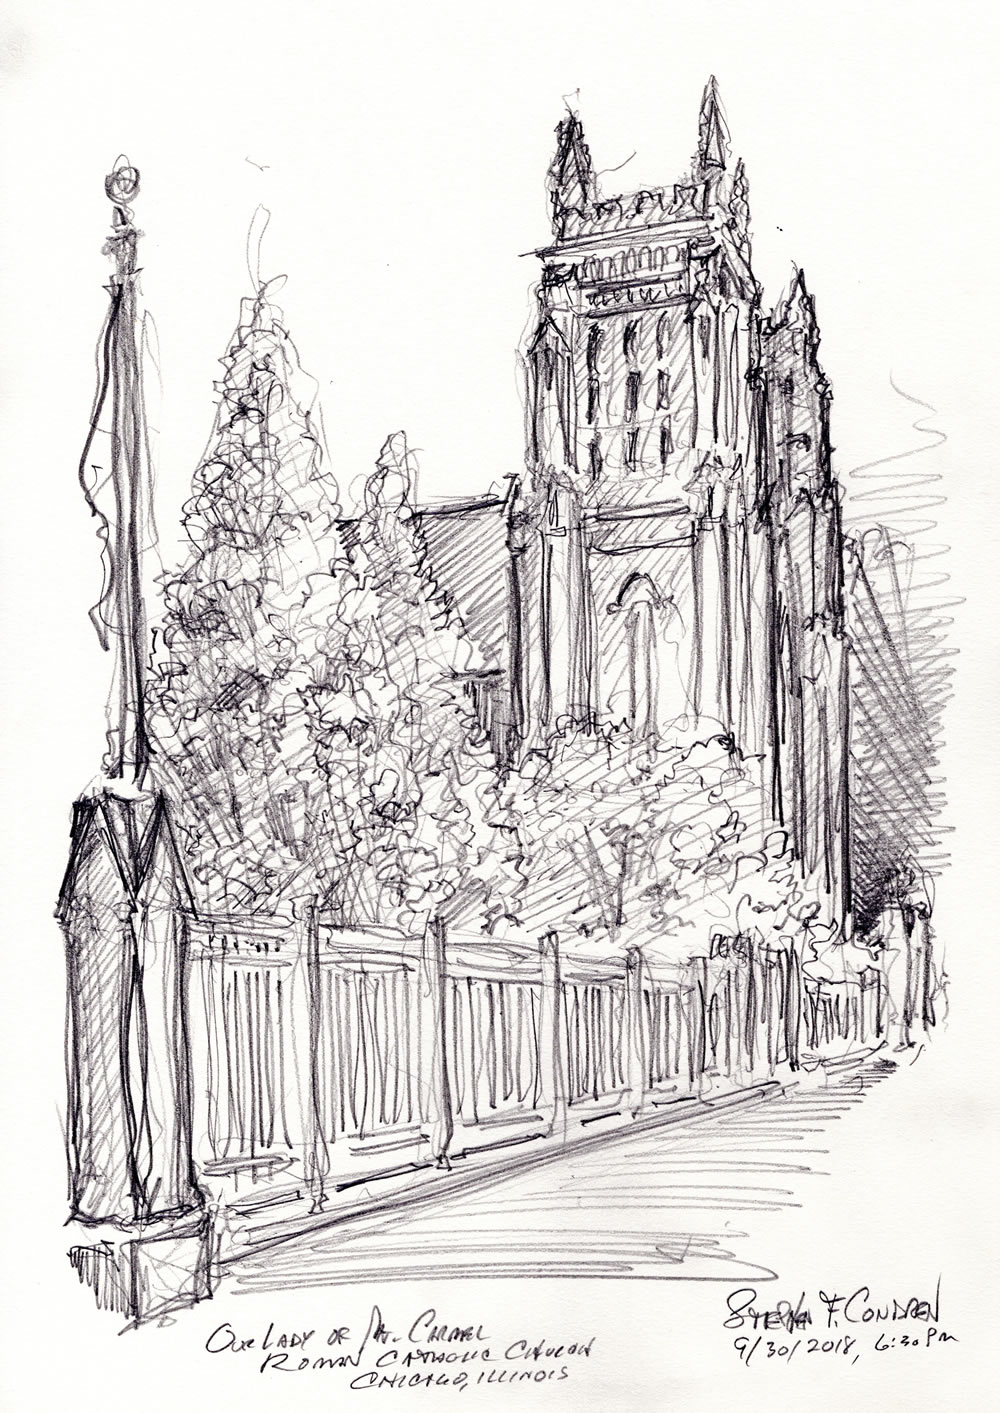 Live pencil drawing of Our Lady of Mt. Carmel Church.